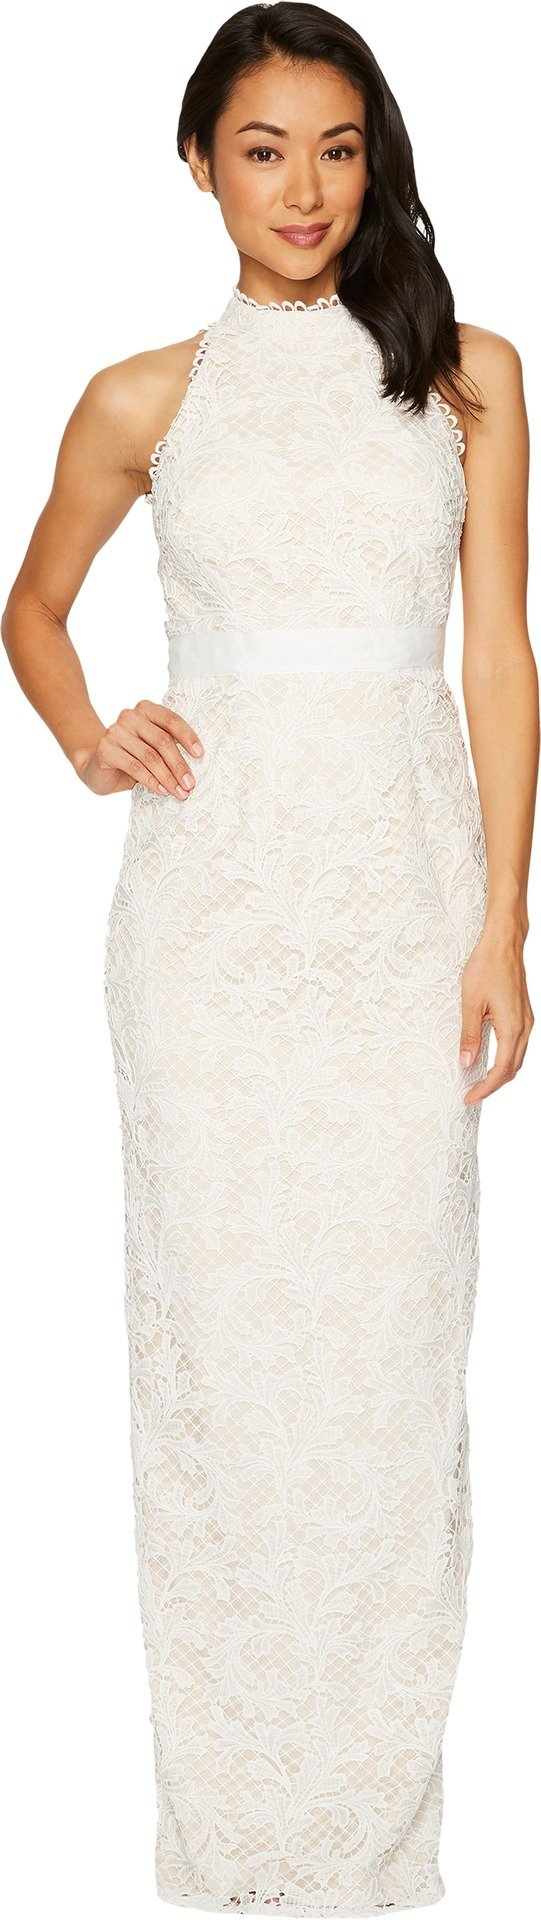 Adrianna Papell Women's Lace Halter Wedding Gown Ivory 8